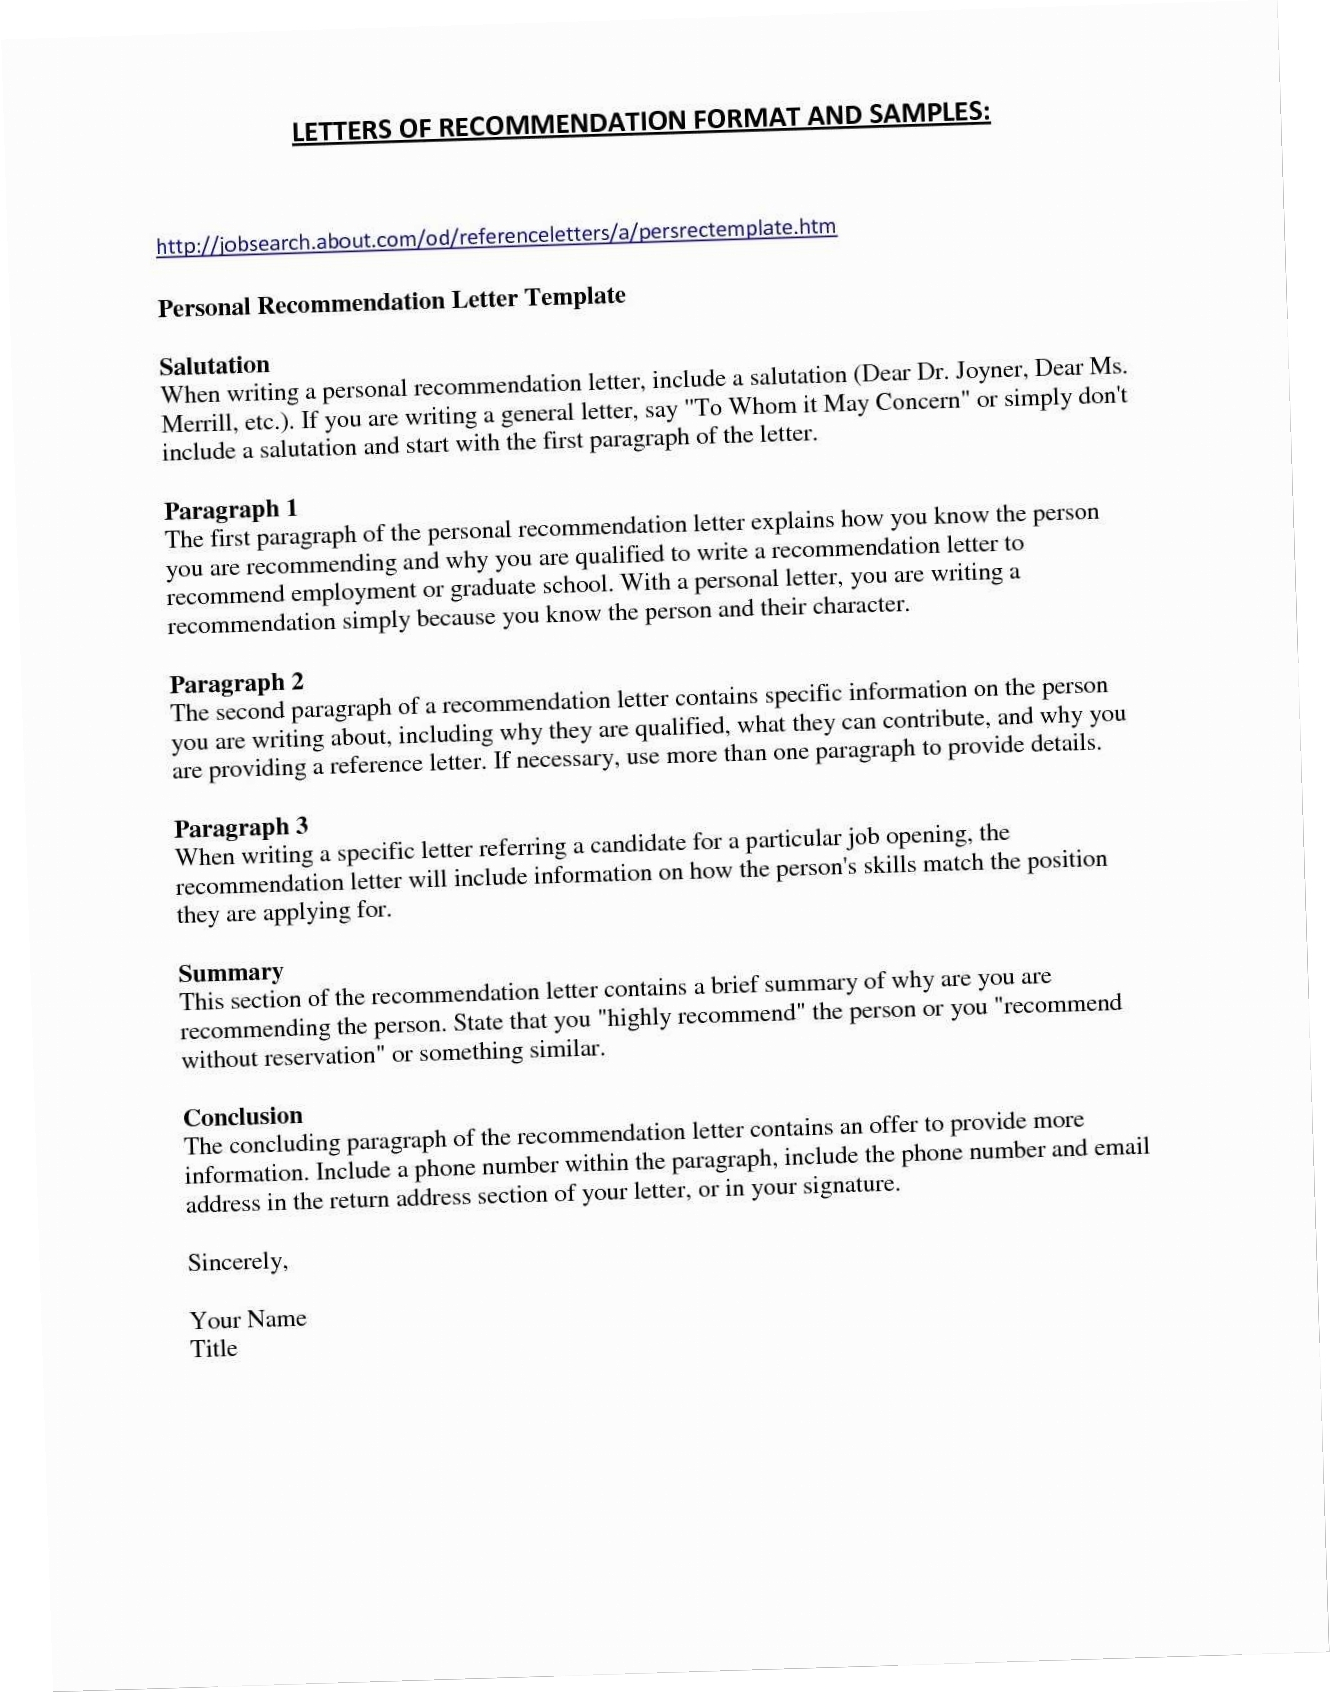 hoa violation letter template Collection-Hoa Violation Letter Template WFP6 Hoa Homeowners Association Bud Template Bud Transparency 11-j